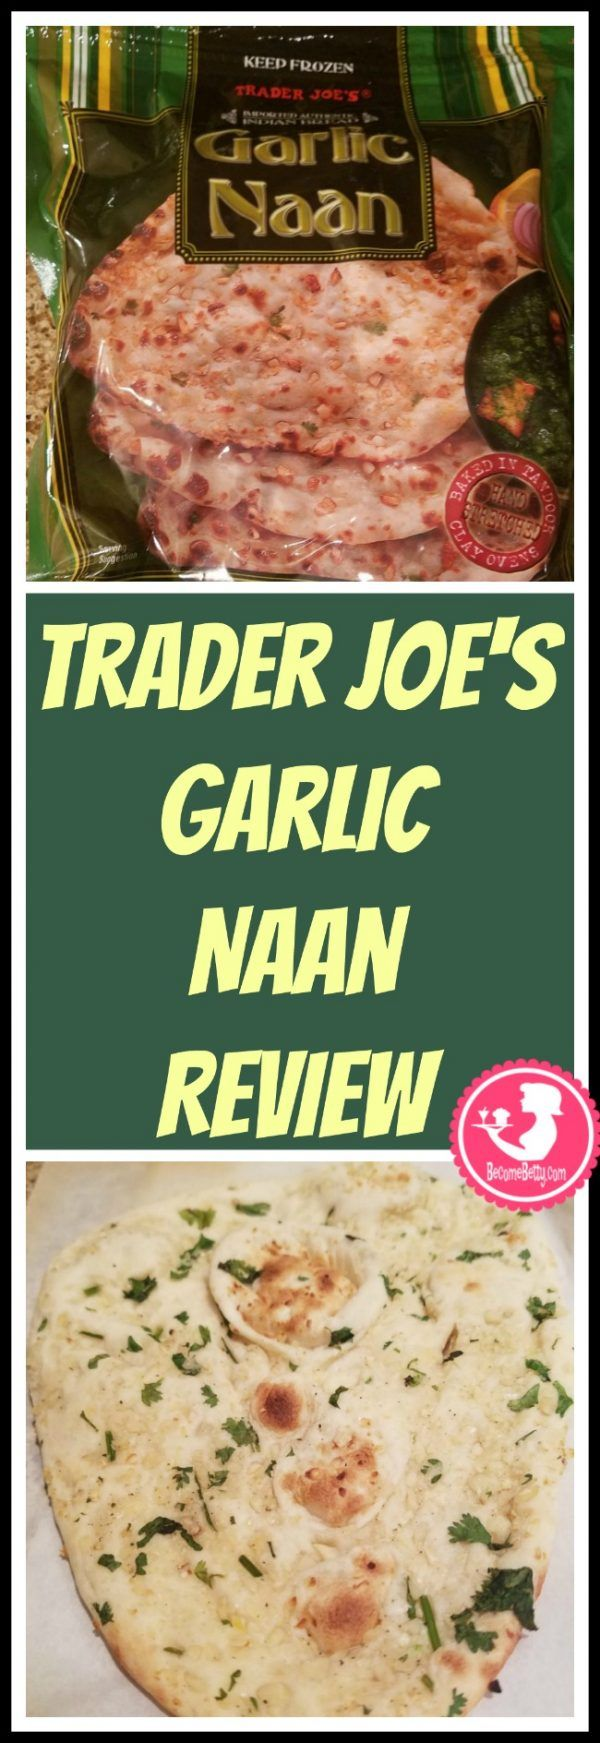 Trader Joe's Garlic Naan review. Want to know if this is something worth putting on your shopping list from Trader Joe's? All pins link to BecomeBetty.com where you can find reviews, pictures, thoughts, calorie counts, nutritional information, how to prepare, allergy information, and price.